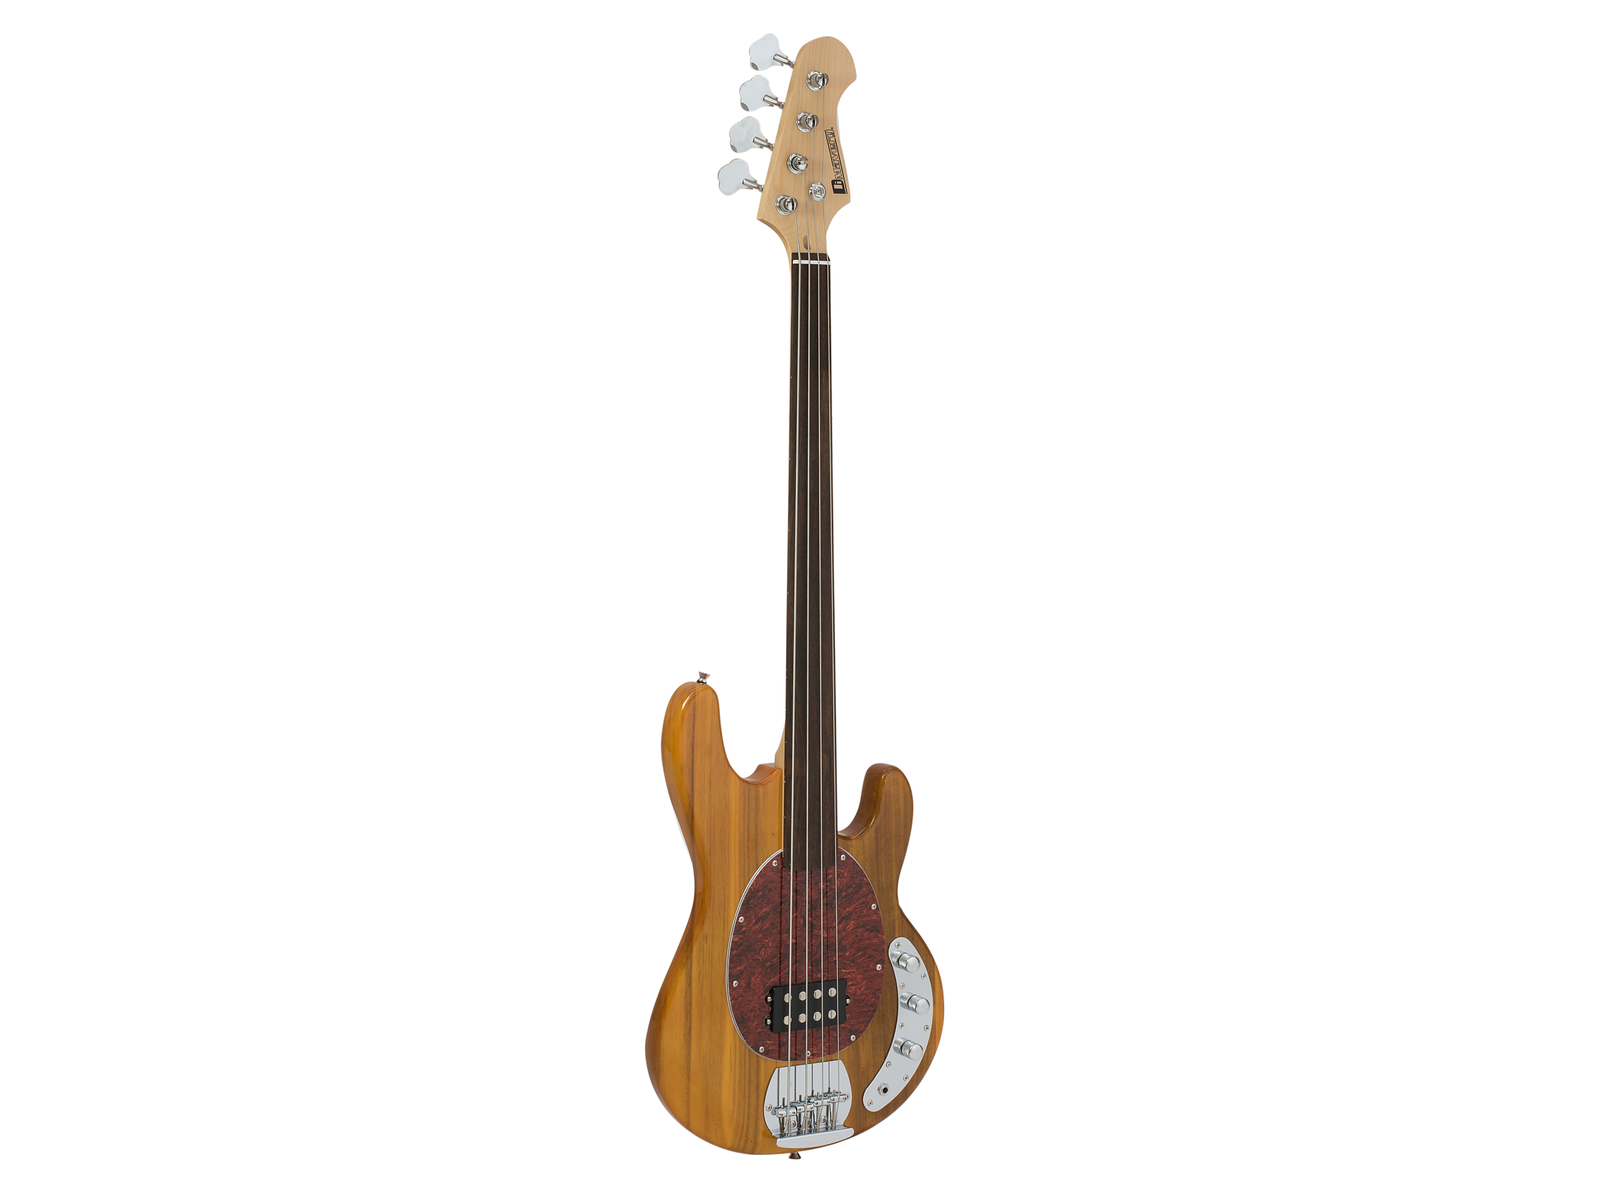 DIMAVERY MM-501 E-Bass, fretless, natur